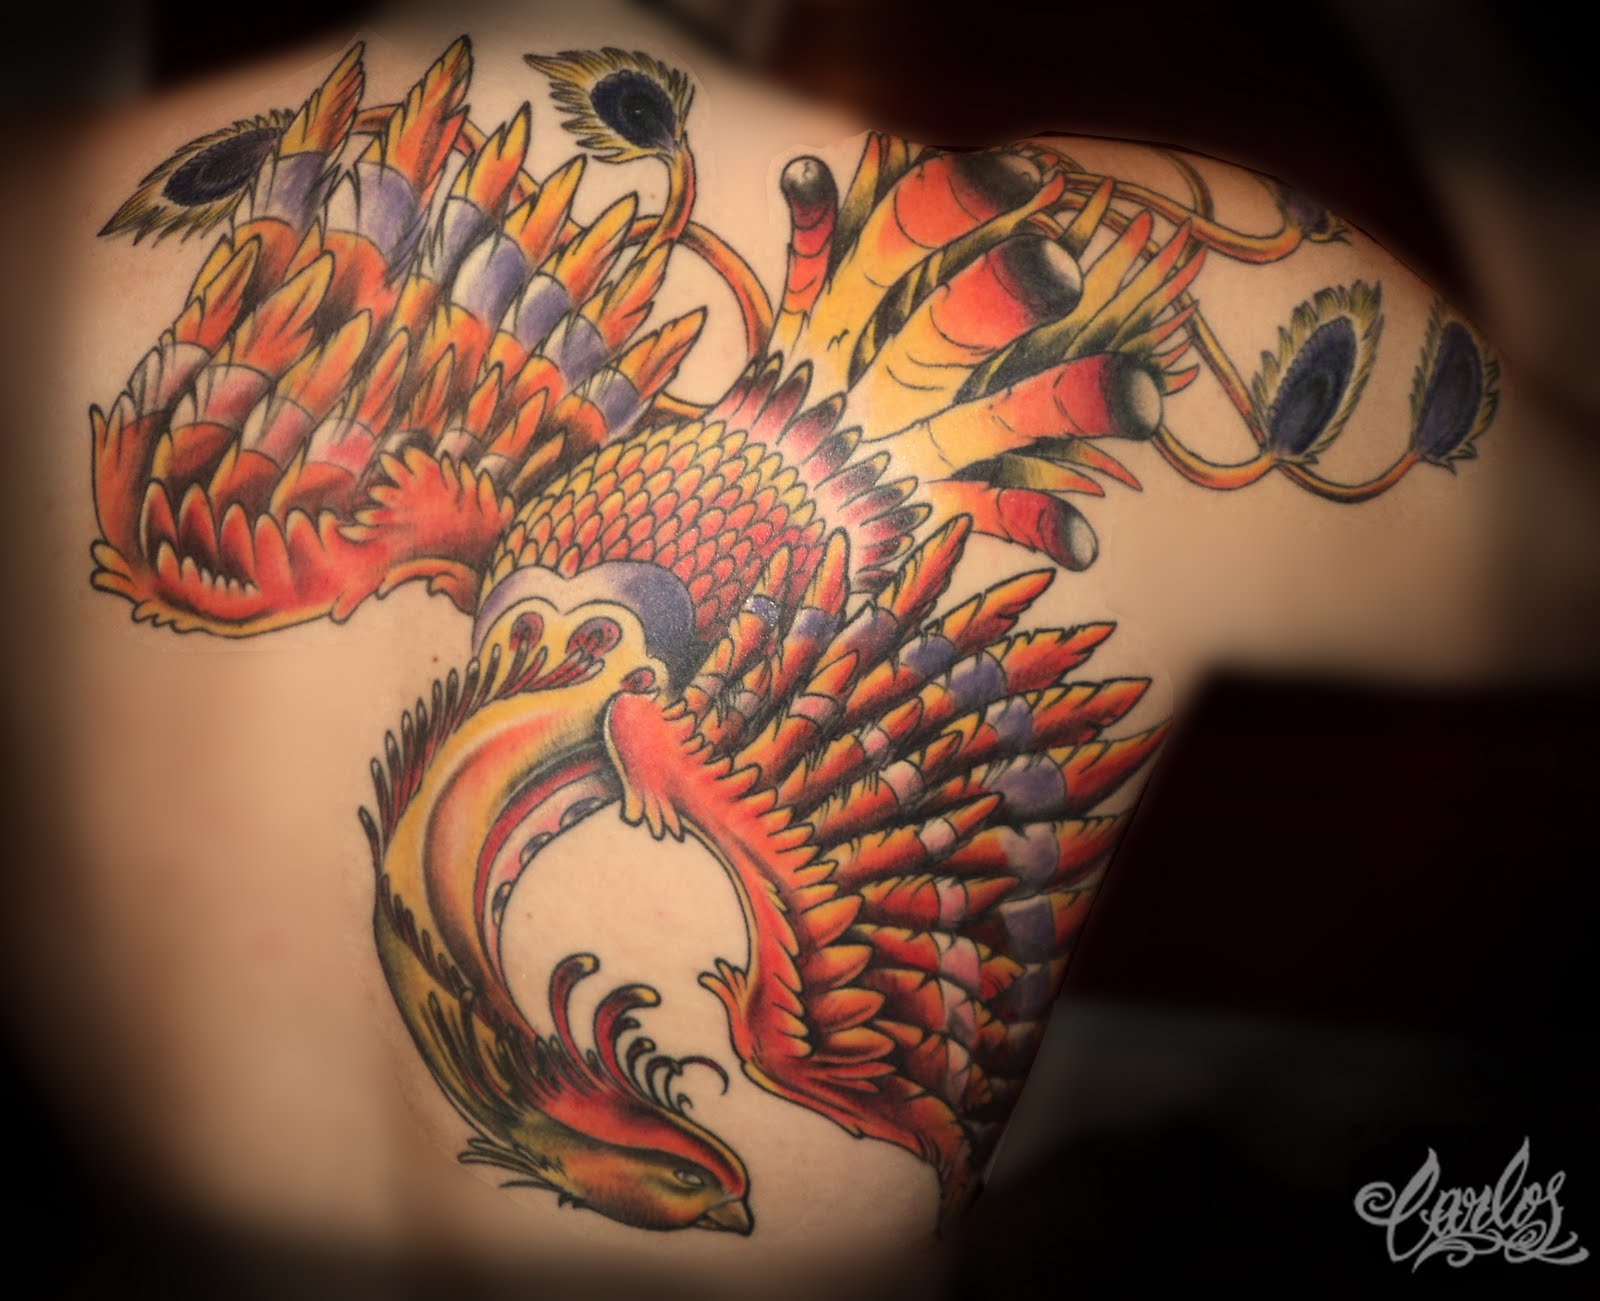 Carlos Art Studio: Ave Fenix tattoo